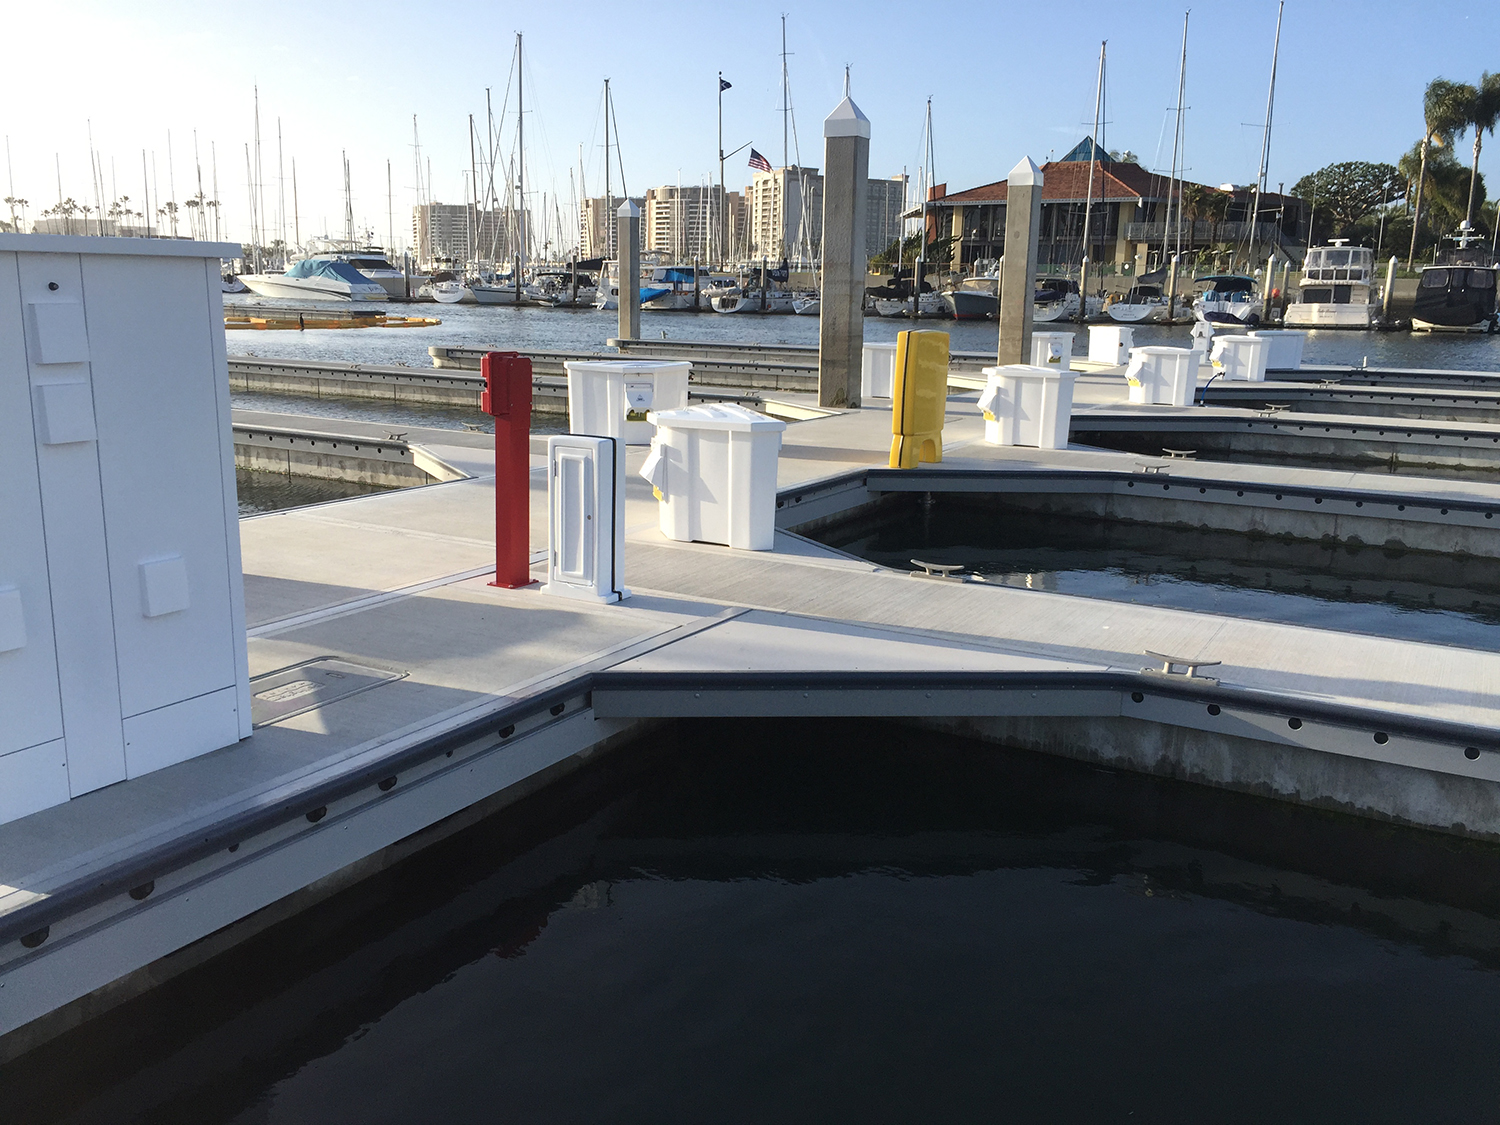 Marina del Rey Marina sets new precedent in marina construction as the first marina in the U.S. to be built with FRP walers and thru-rods.